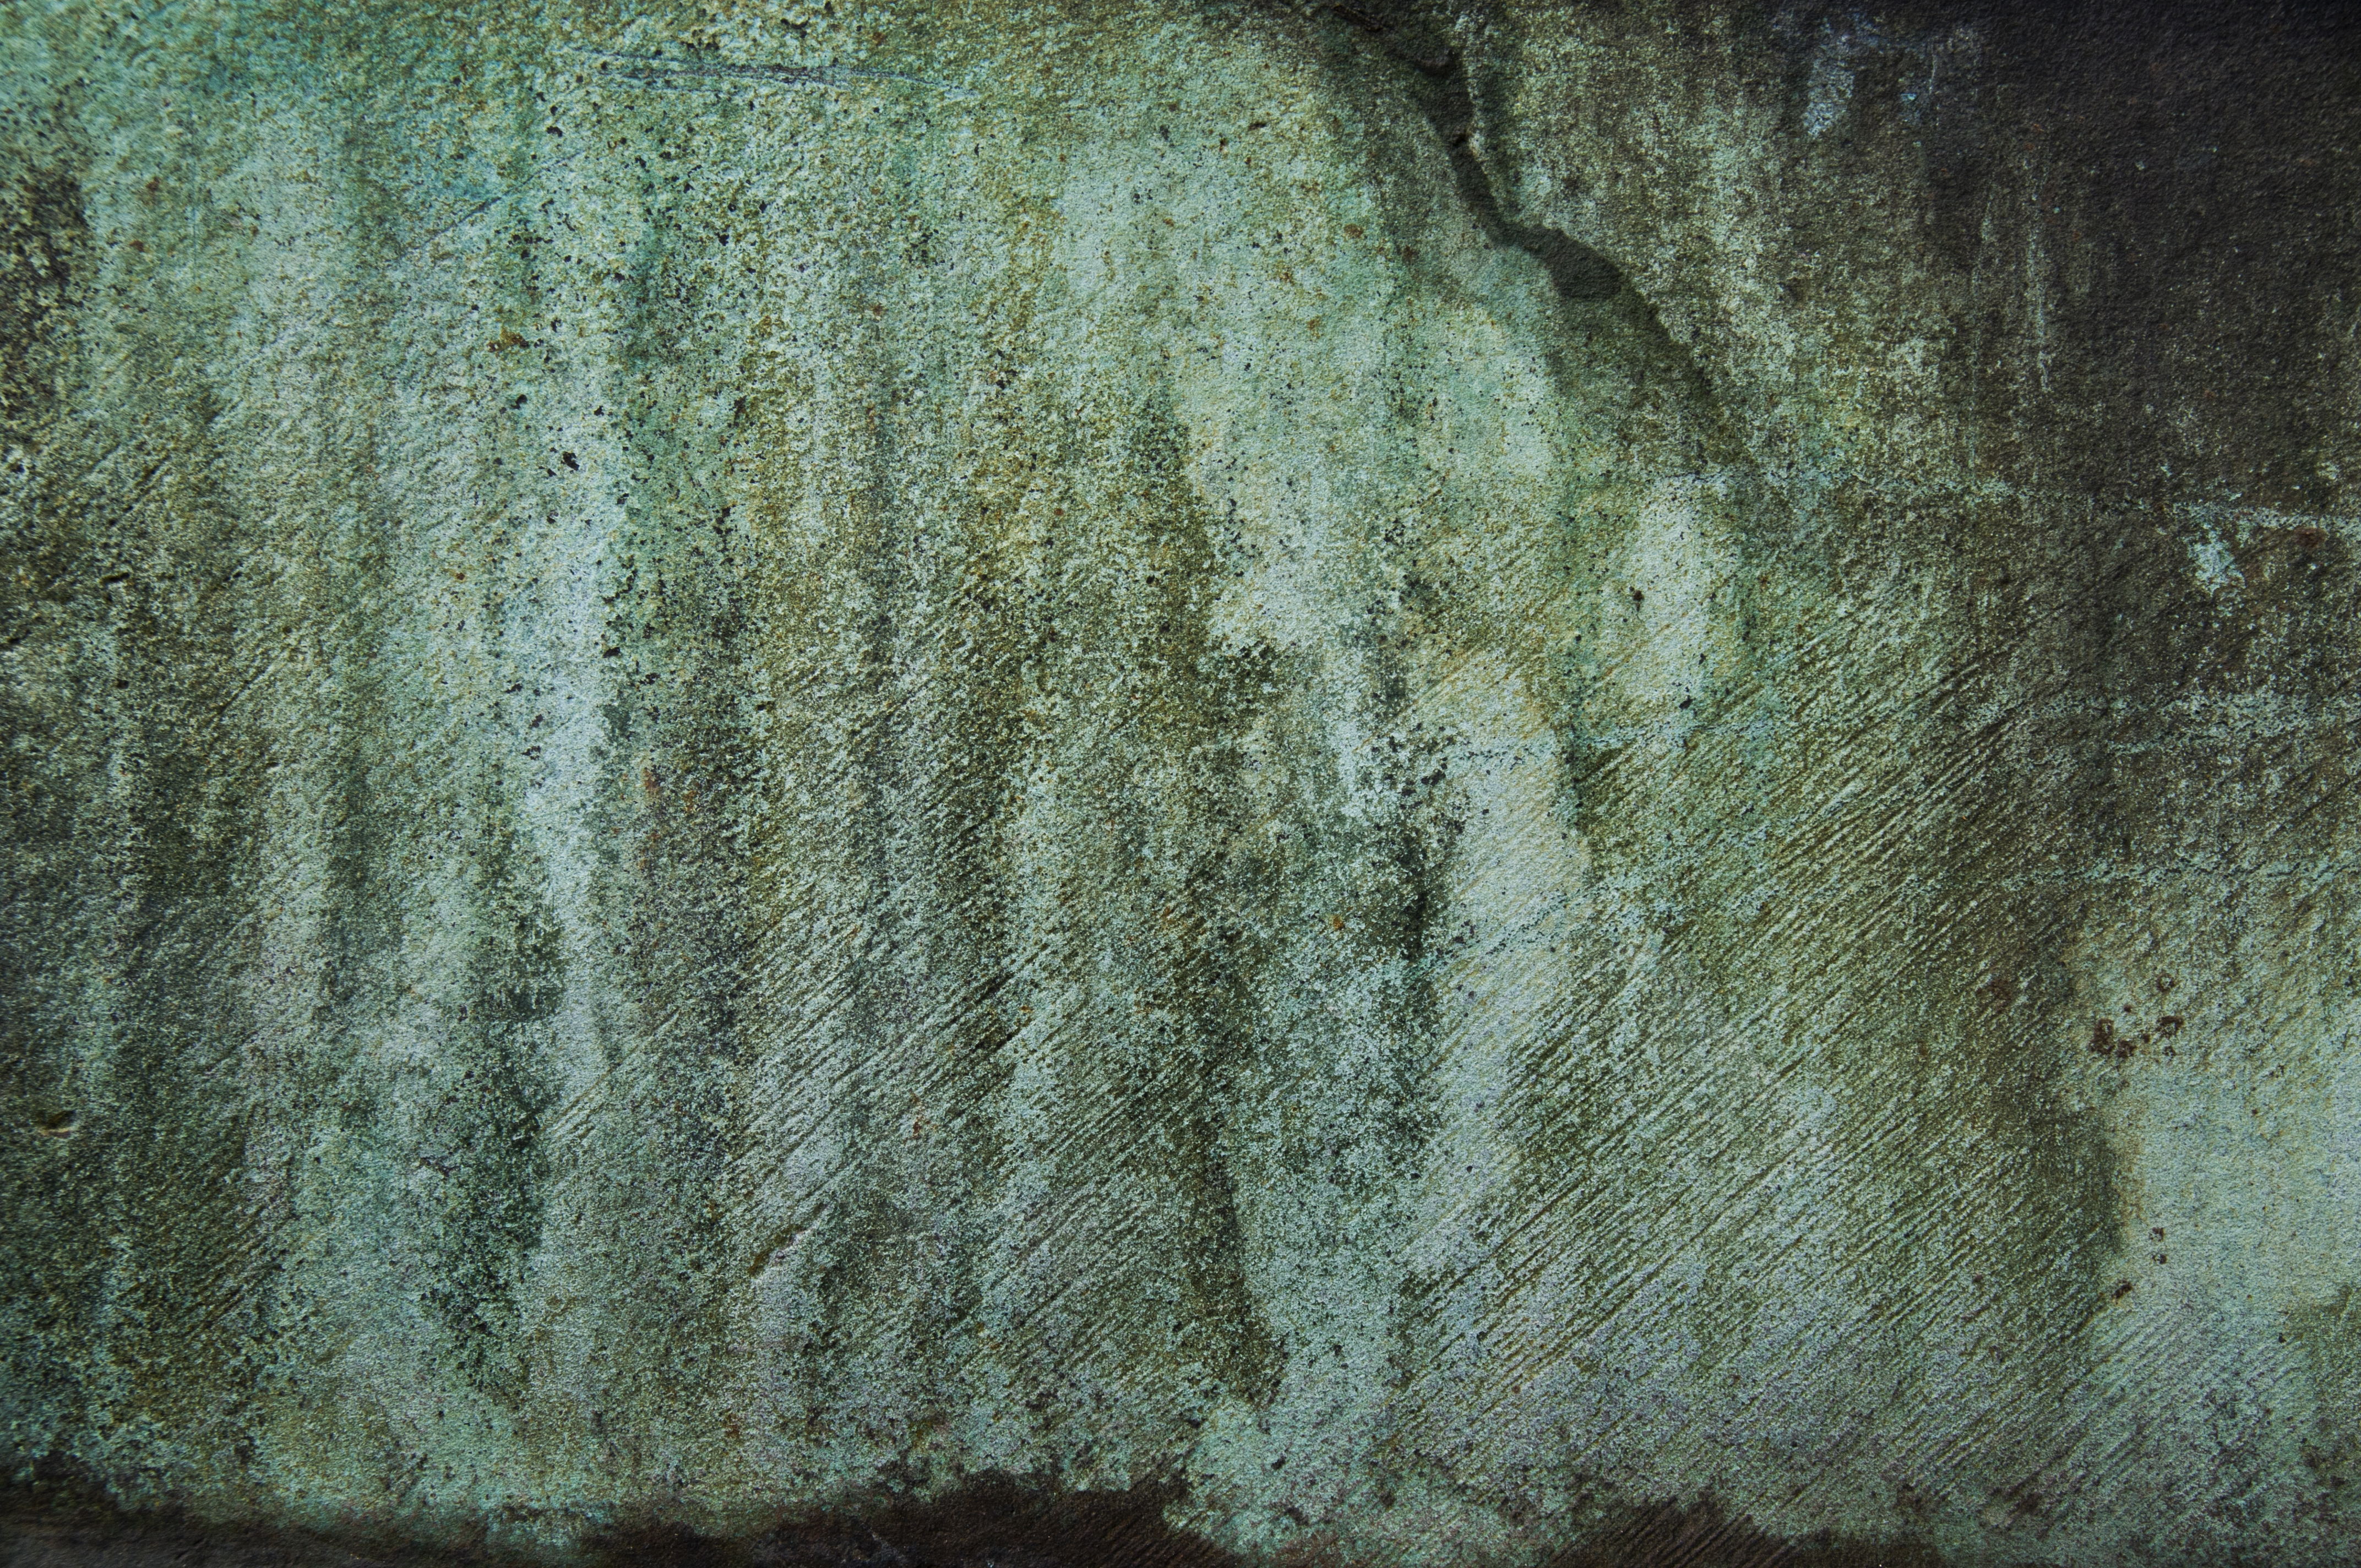 Untitled Texture 368